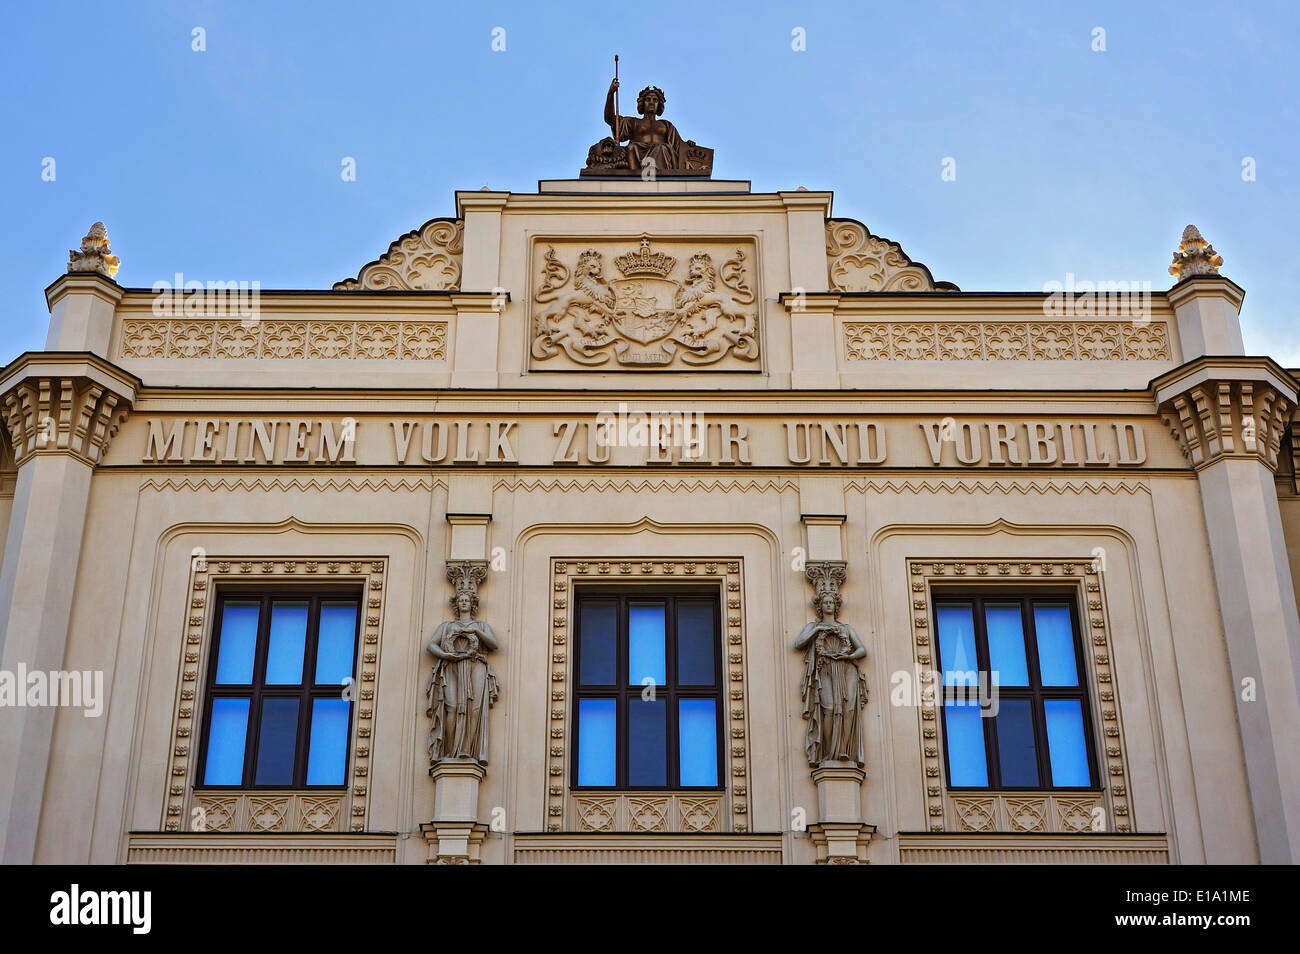 Gable figure and coat of arms, Museum of Ethnology, Munich, Bavaria, Germany - Stock Image